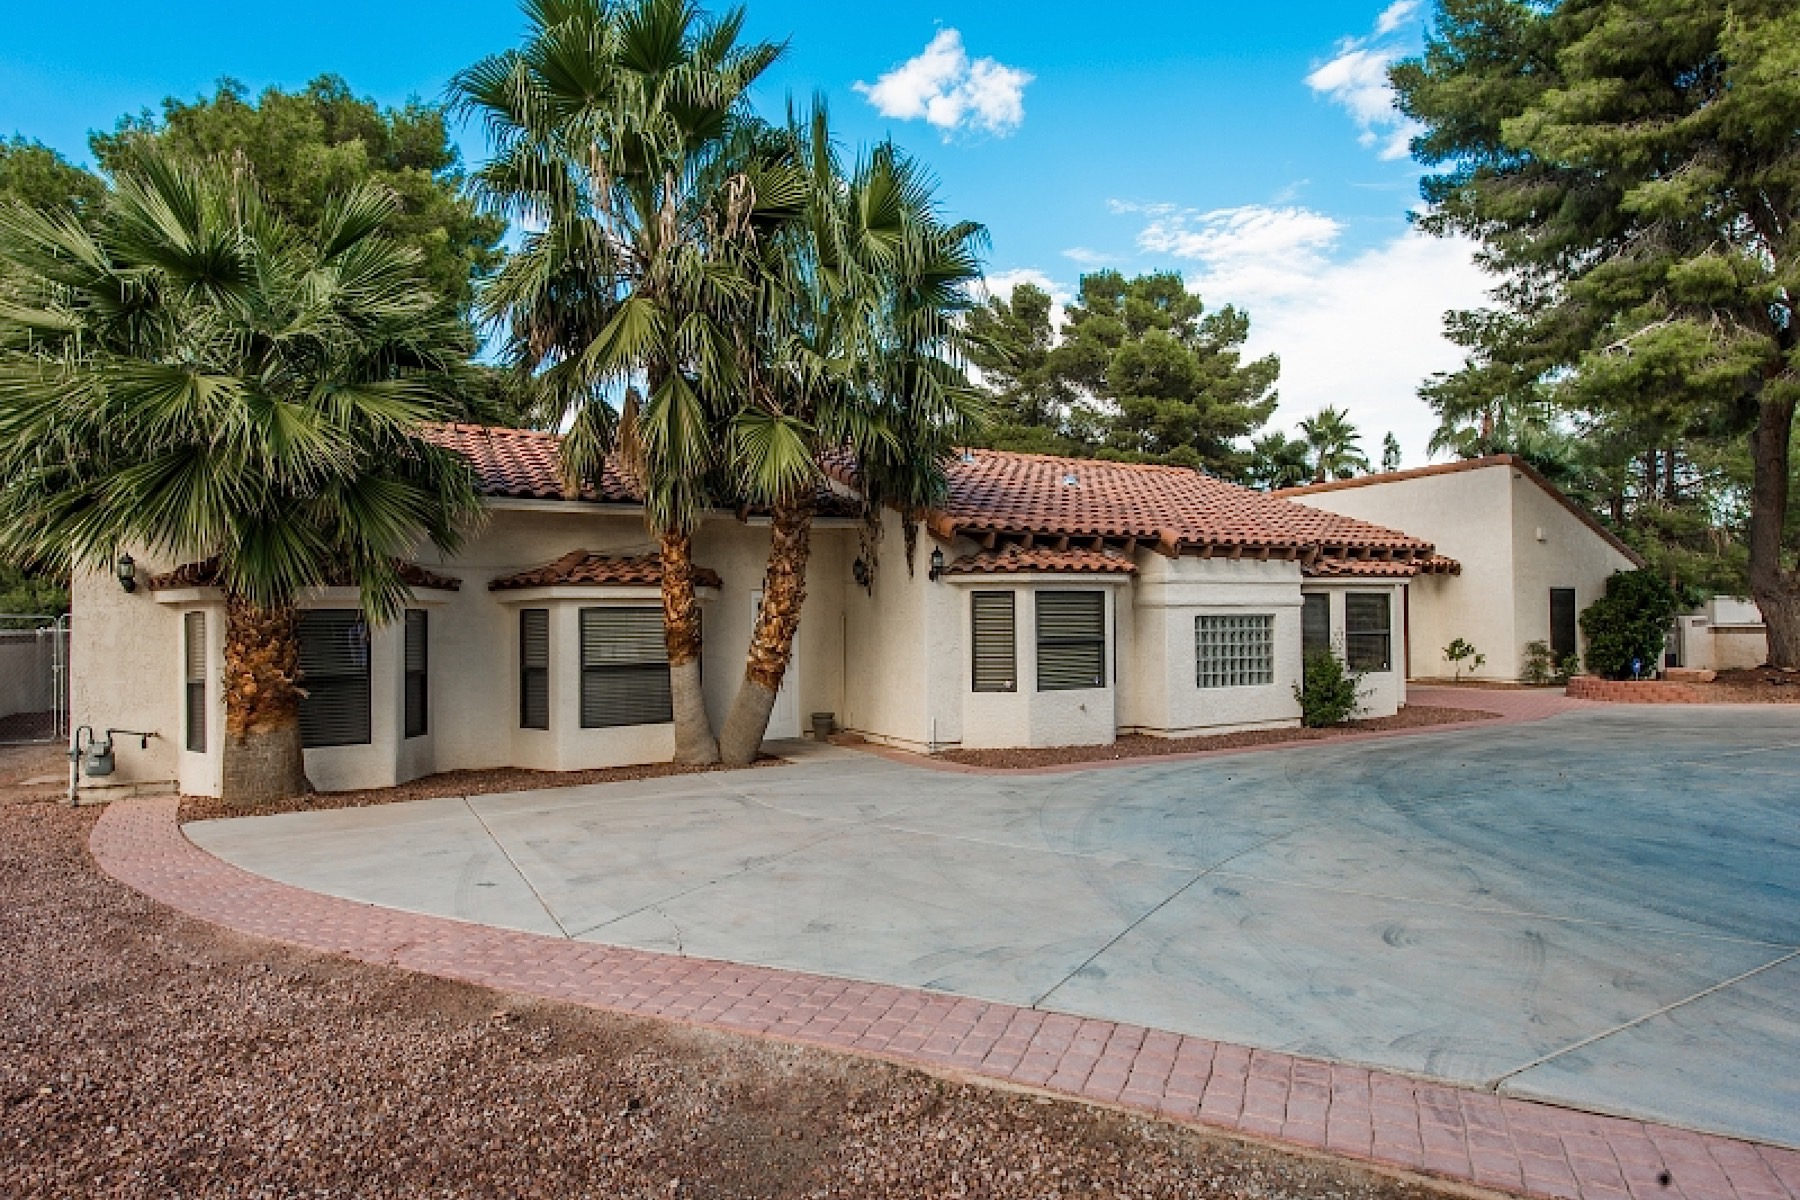 Single Family Home for Sale at 4270 E Oquendo Rd Las Vegas, Nevada, 89120 United States